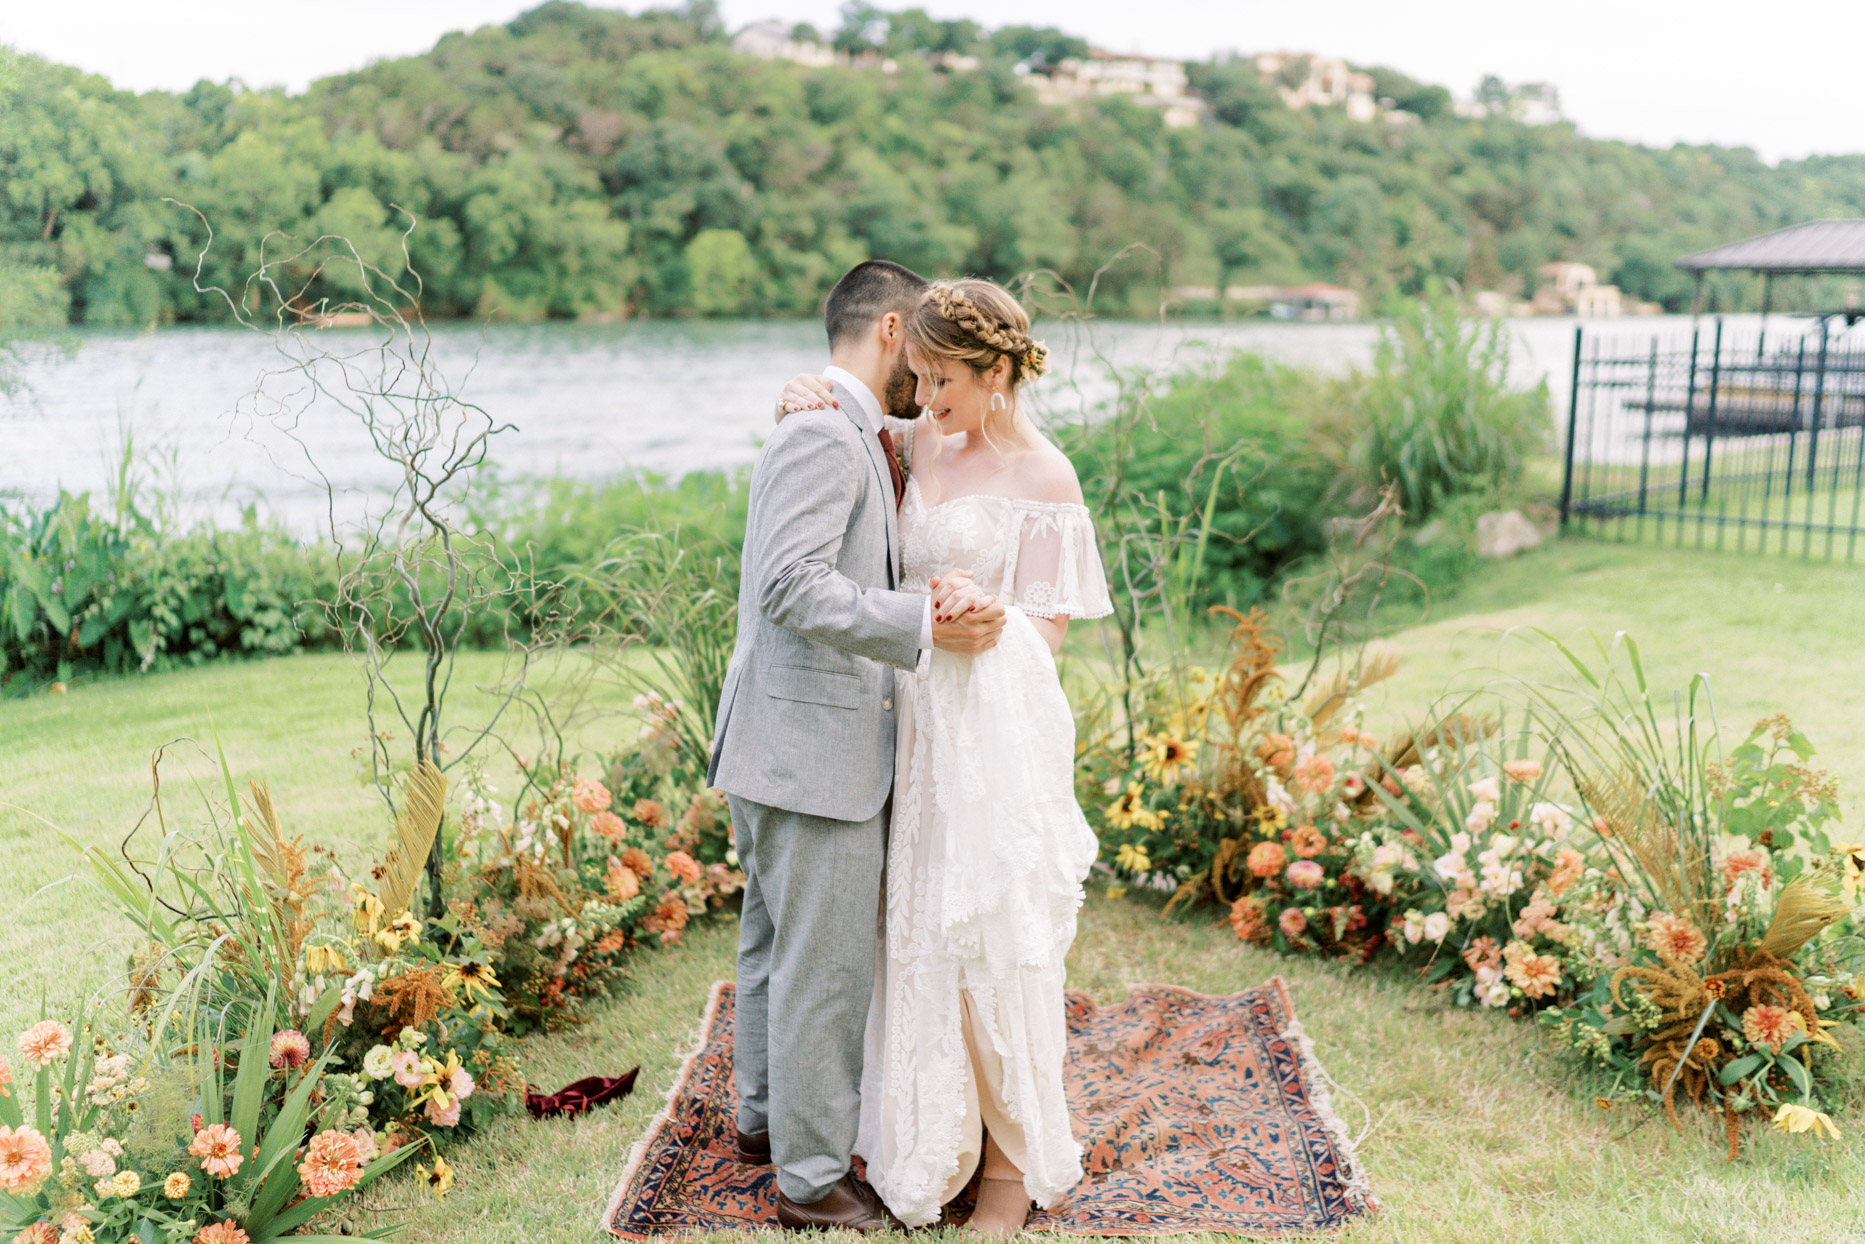 wedding couple first dance on grassy field with bohemian rug